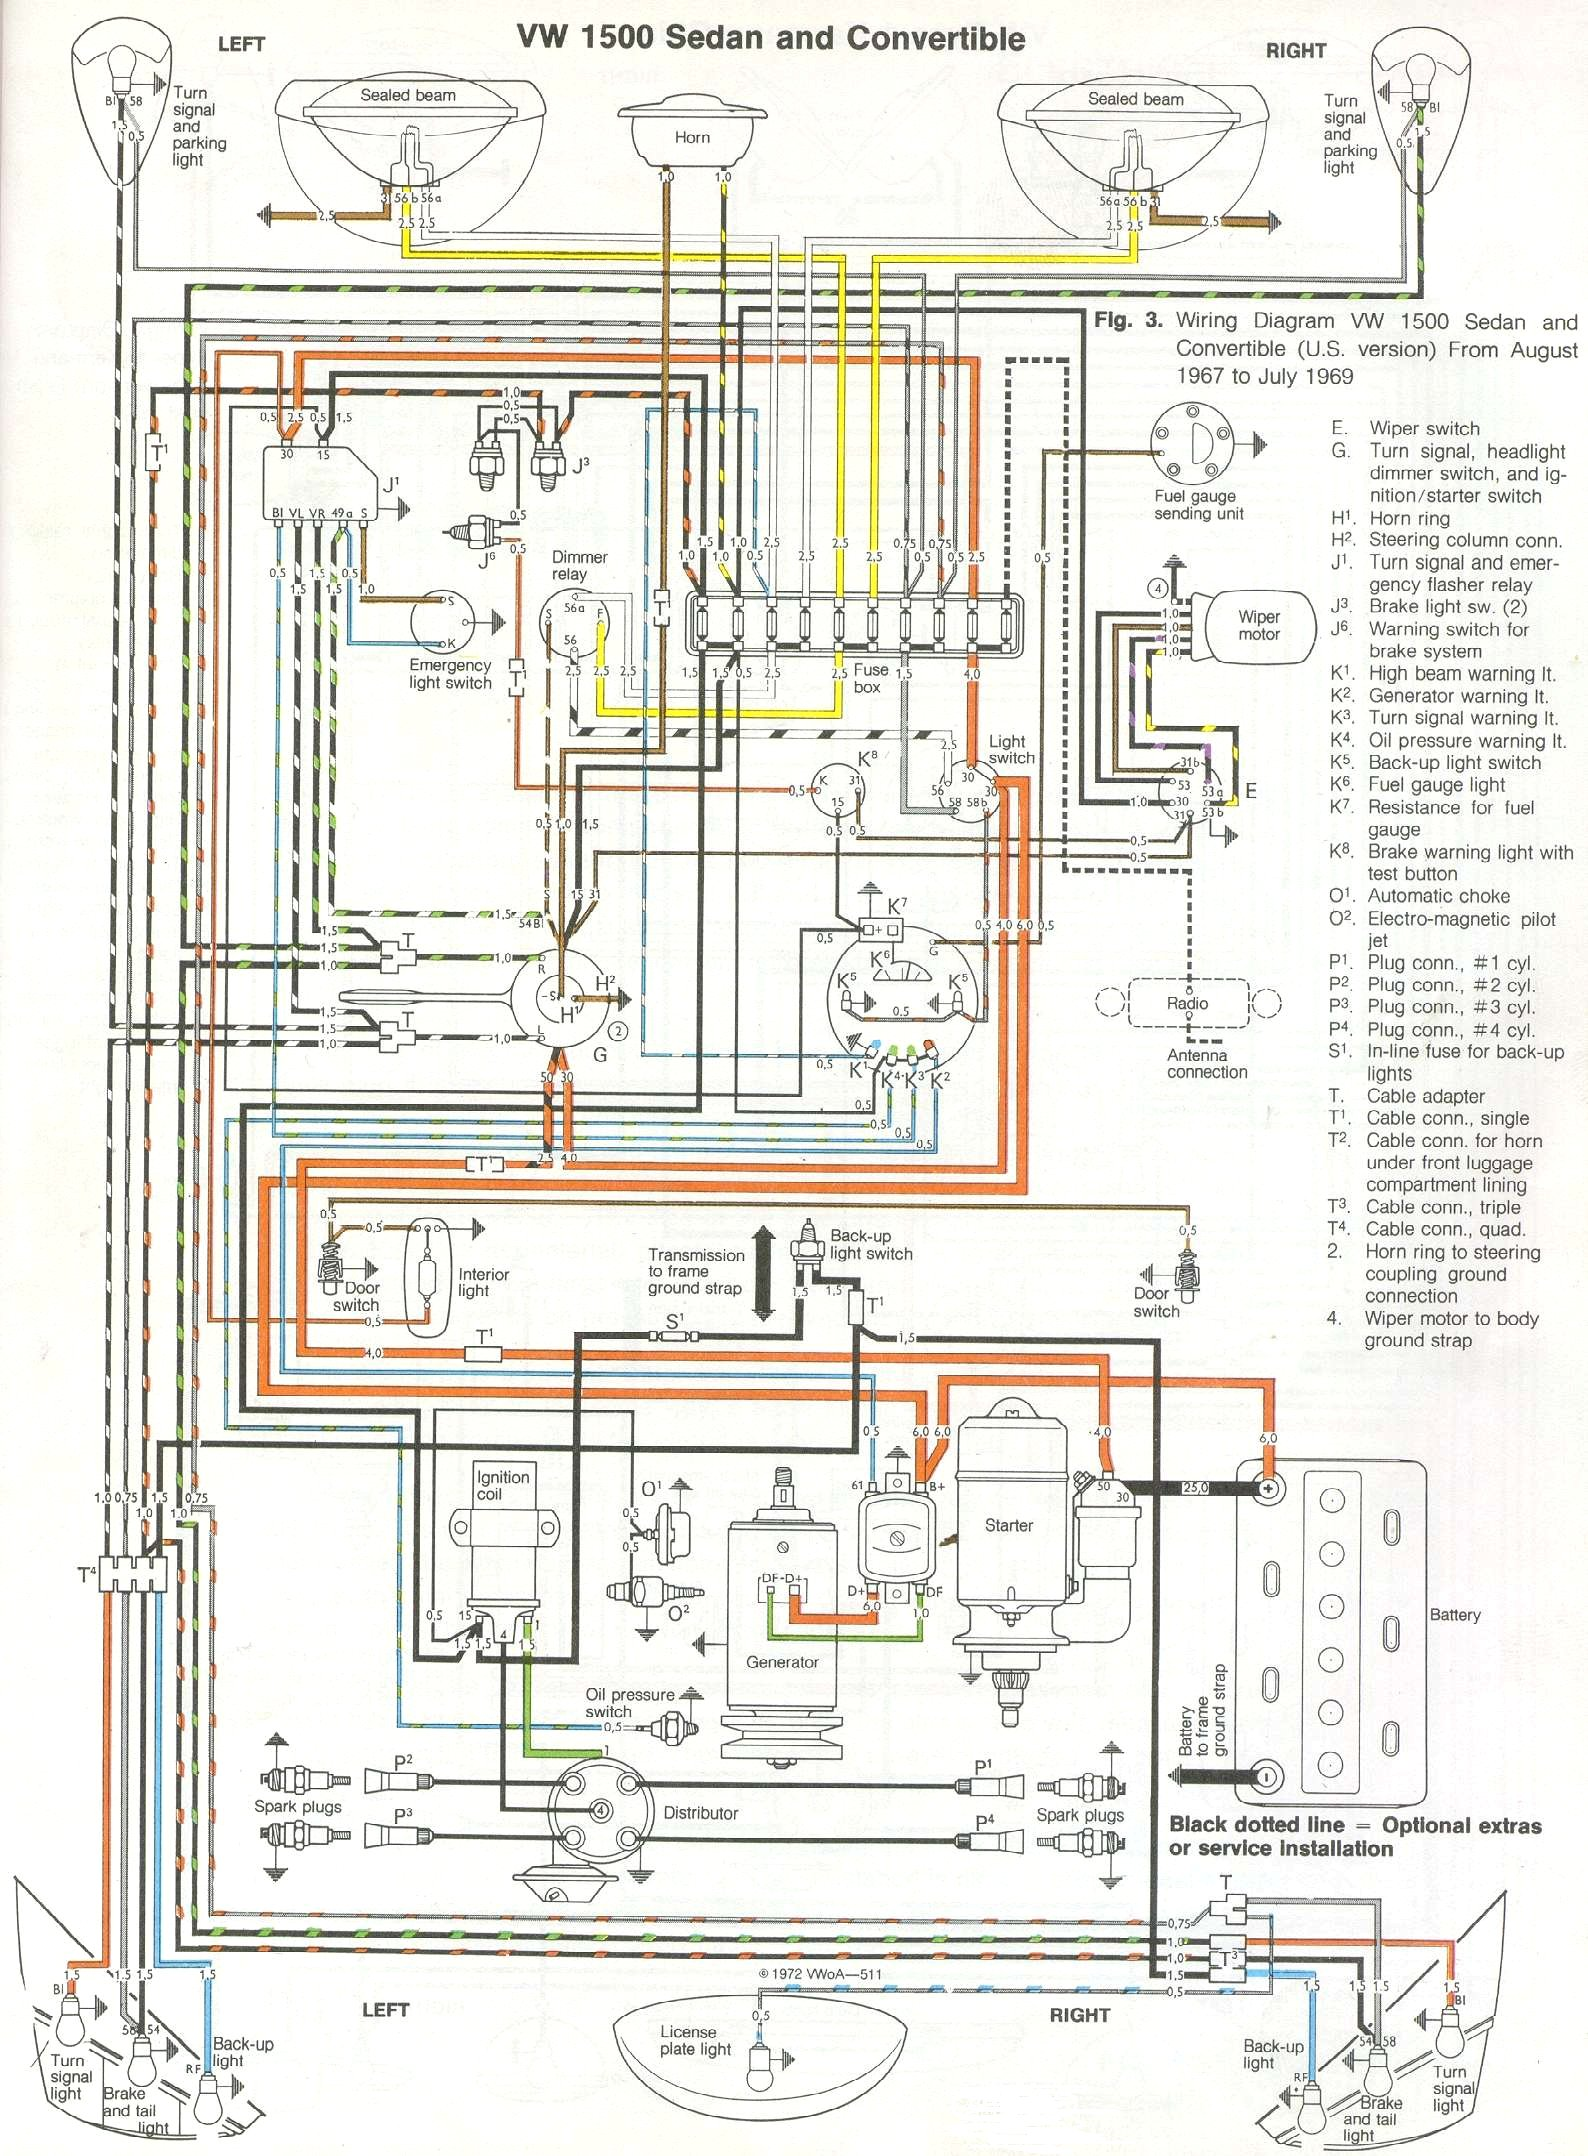 bug_6869 vw wiring harness diagram cj7 wiring harness diagram \u2022 wiring Wiring Harness Diagram at creativeand.co